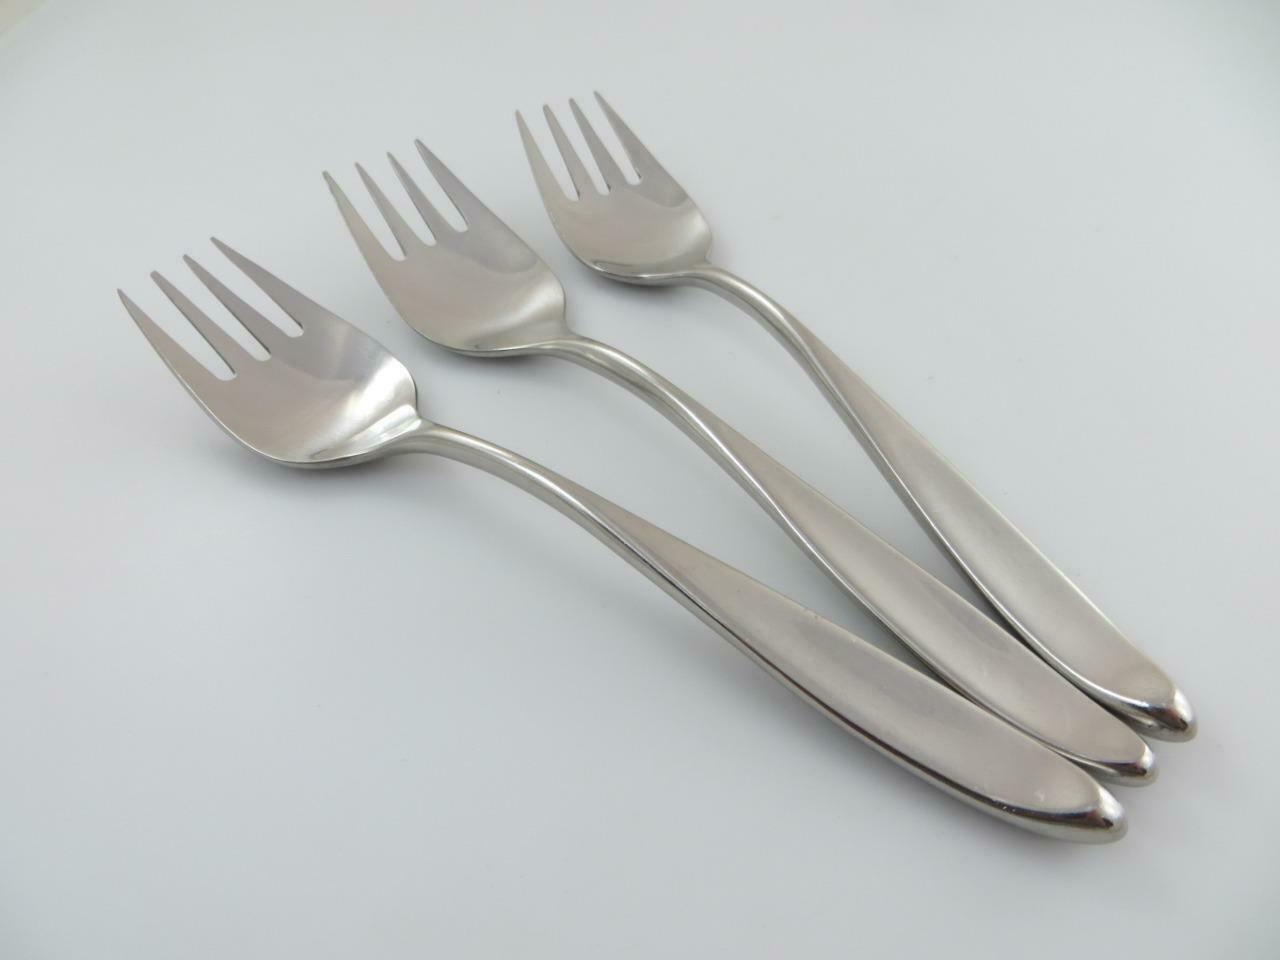 3 Salad Forks DESIGN 2 Norway Towle Lauffer Stainless Steel 18 8 Flatware Satin